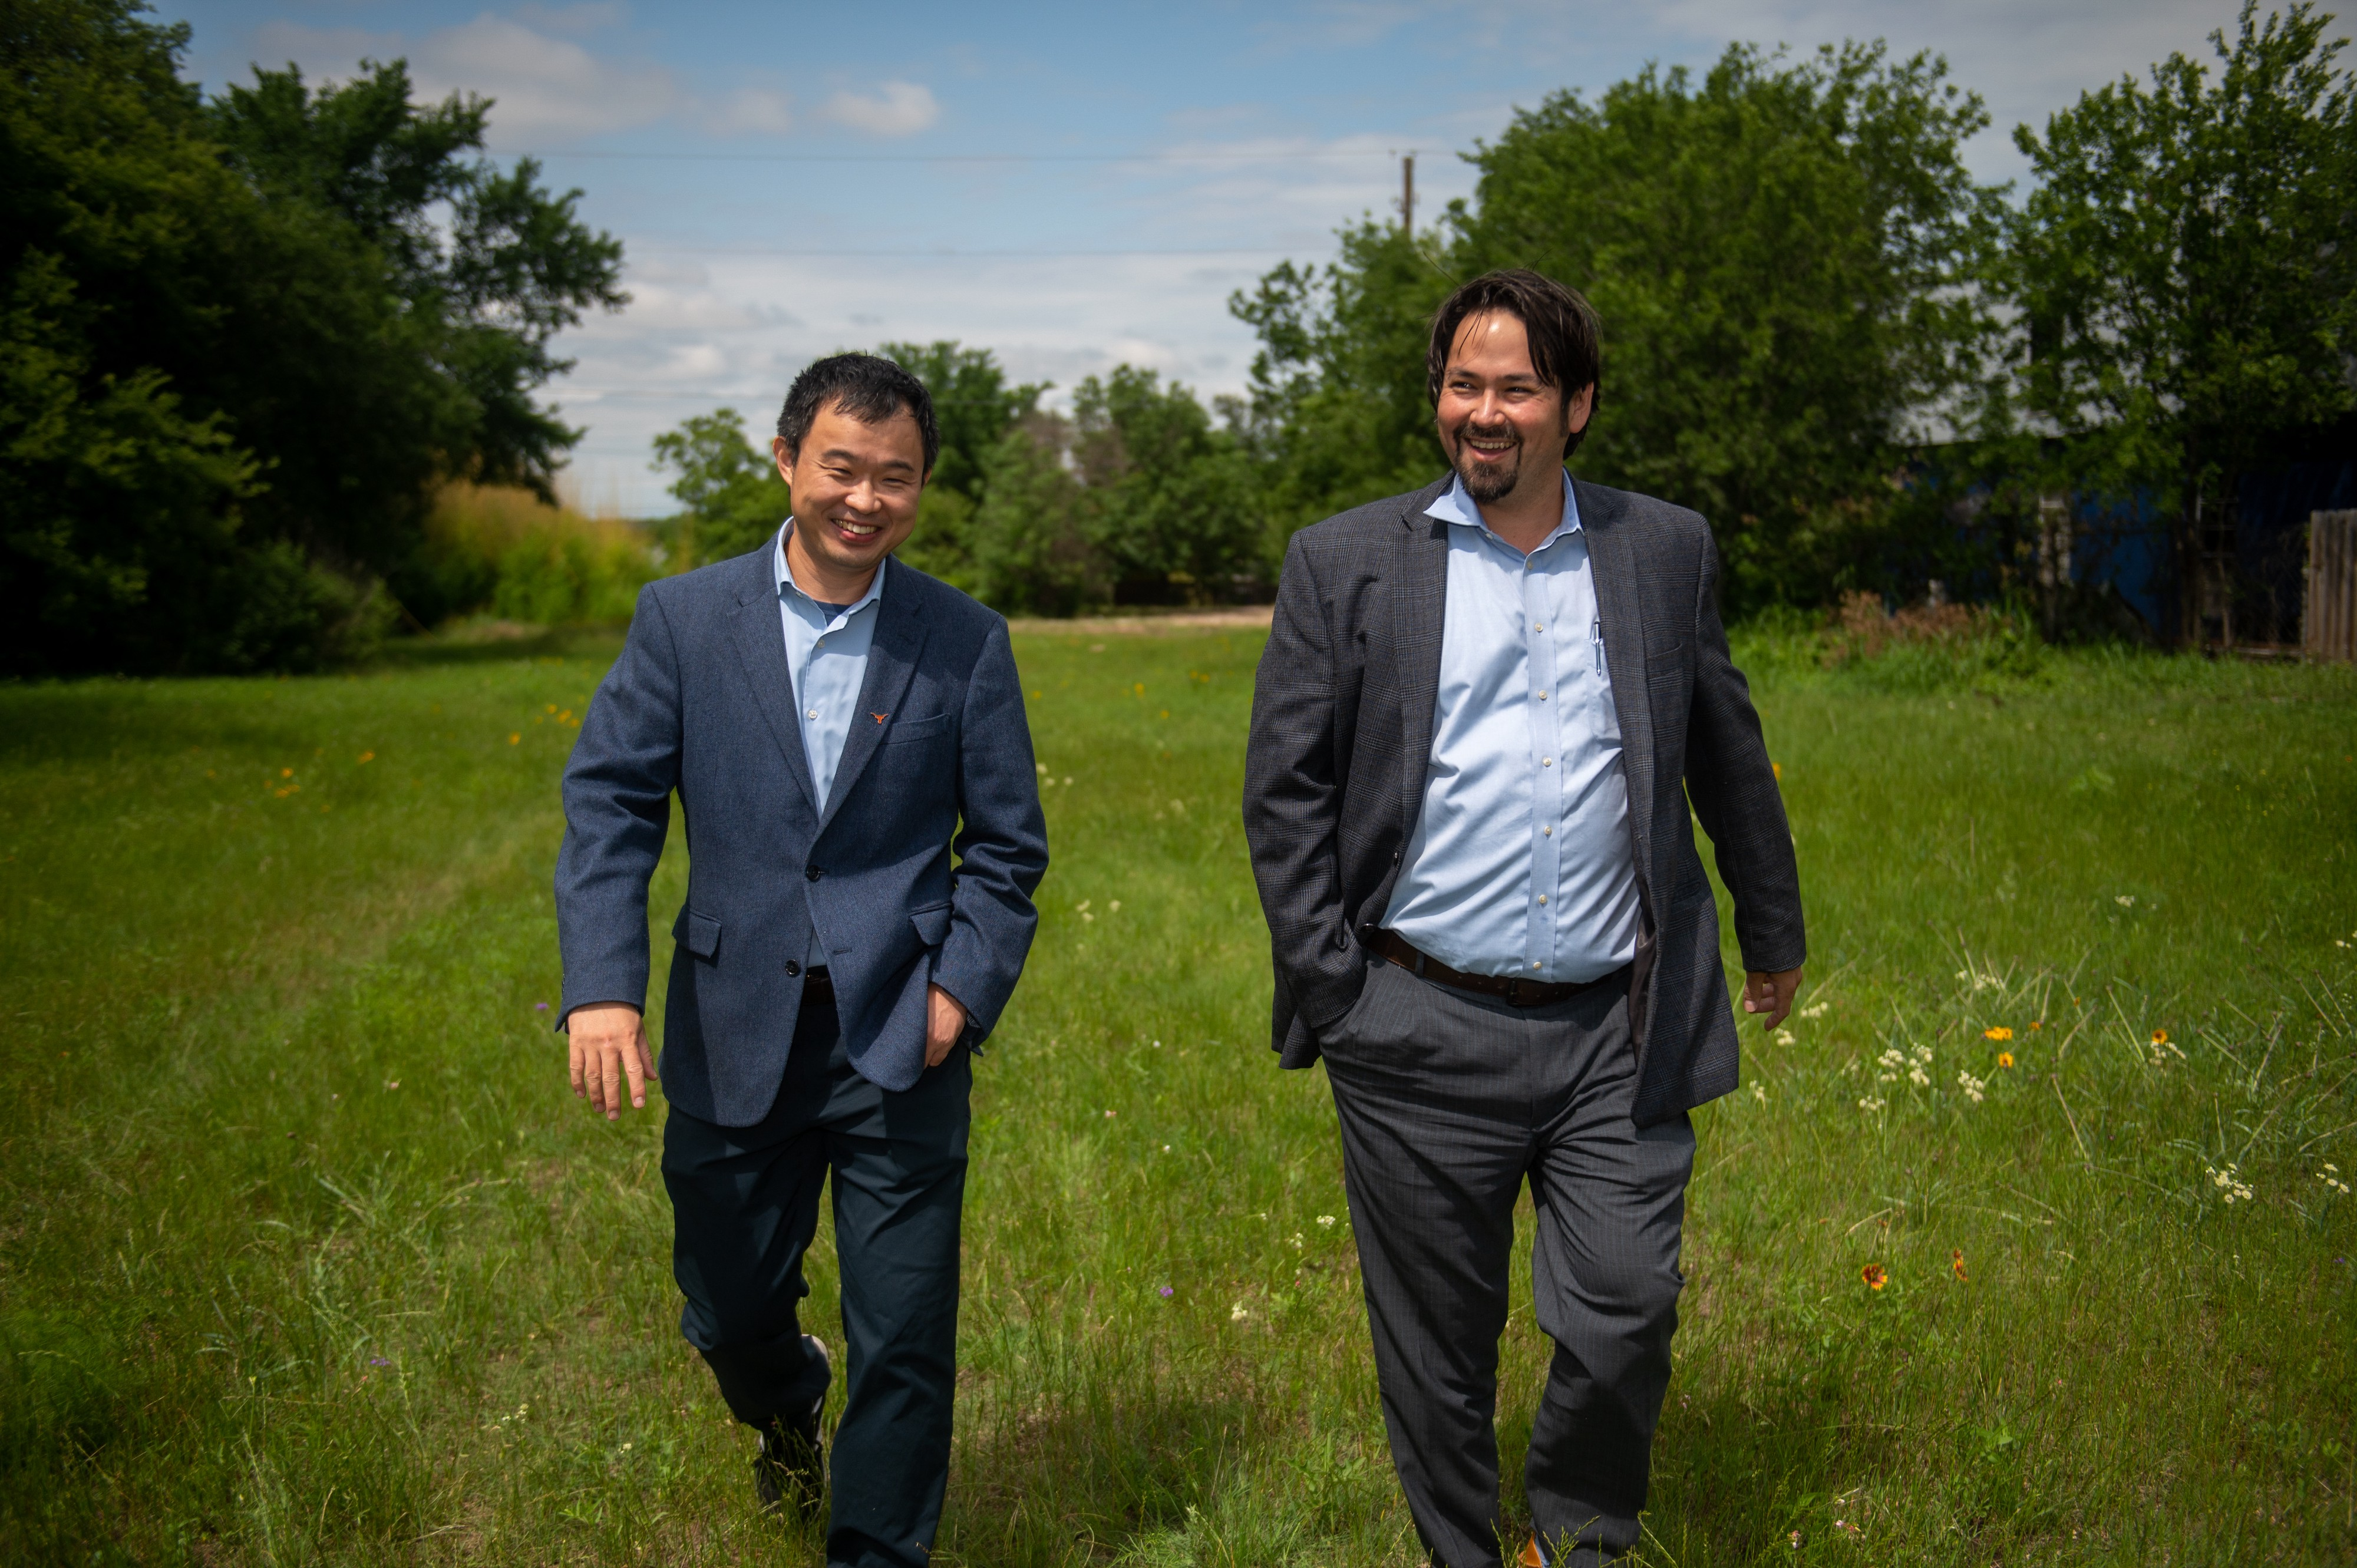 Two men, one a professor and another who works in transportation, walk through a grassy field where they plan to build a mobility hub.